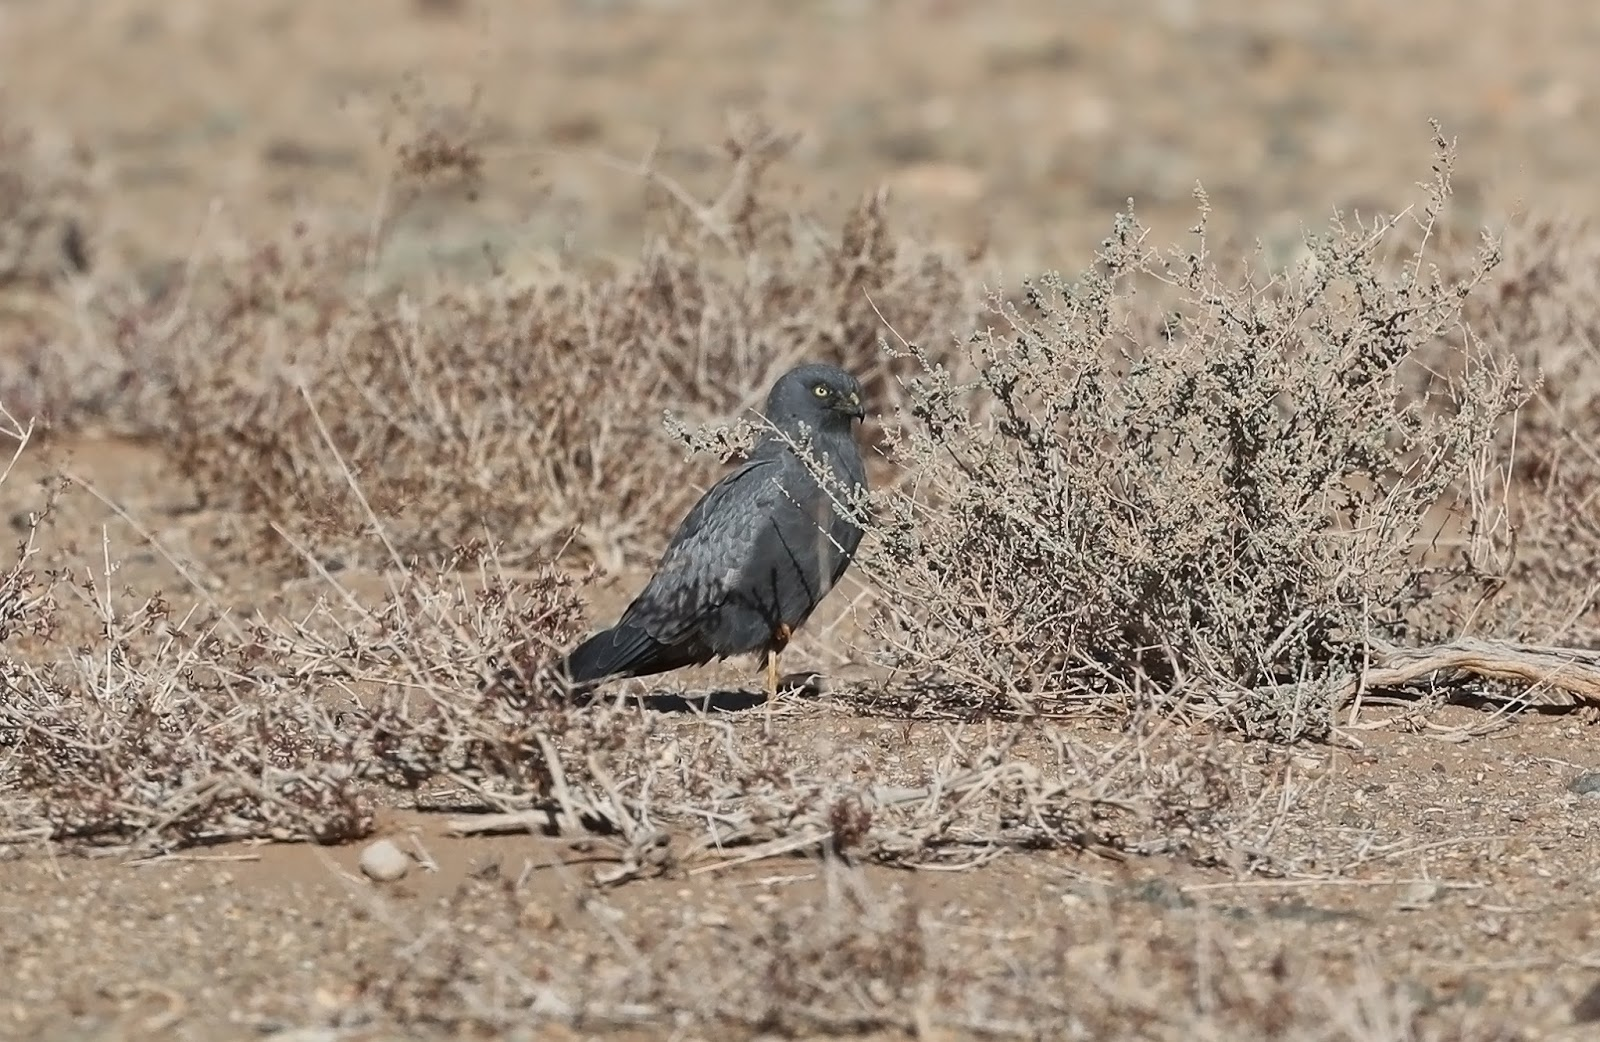 Melanistic Montagu's Harrier / Busard cendré (Circus pygargus), Oued Jenna, Aousserd, 19 March 2018 (Martin Casemore).